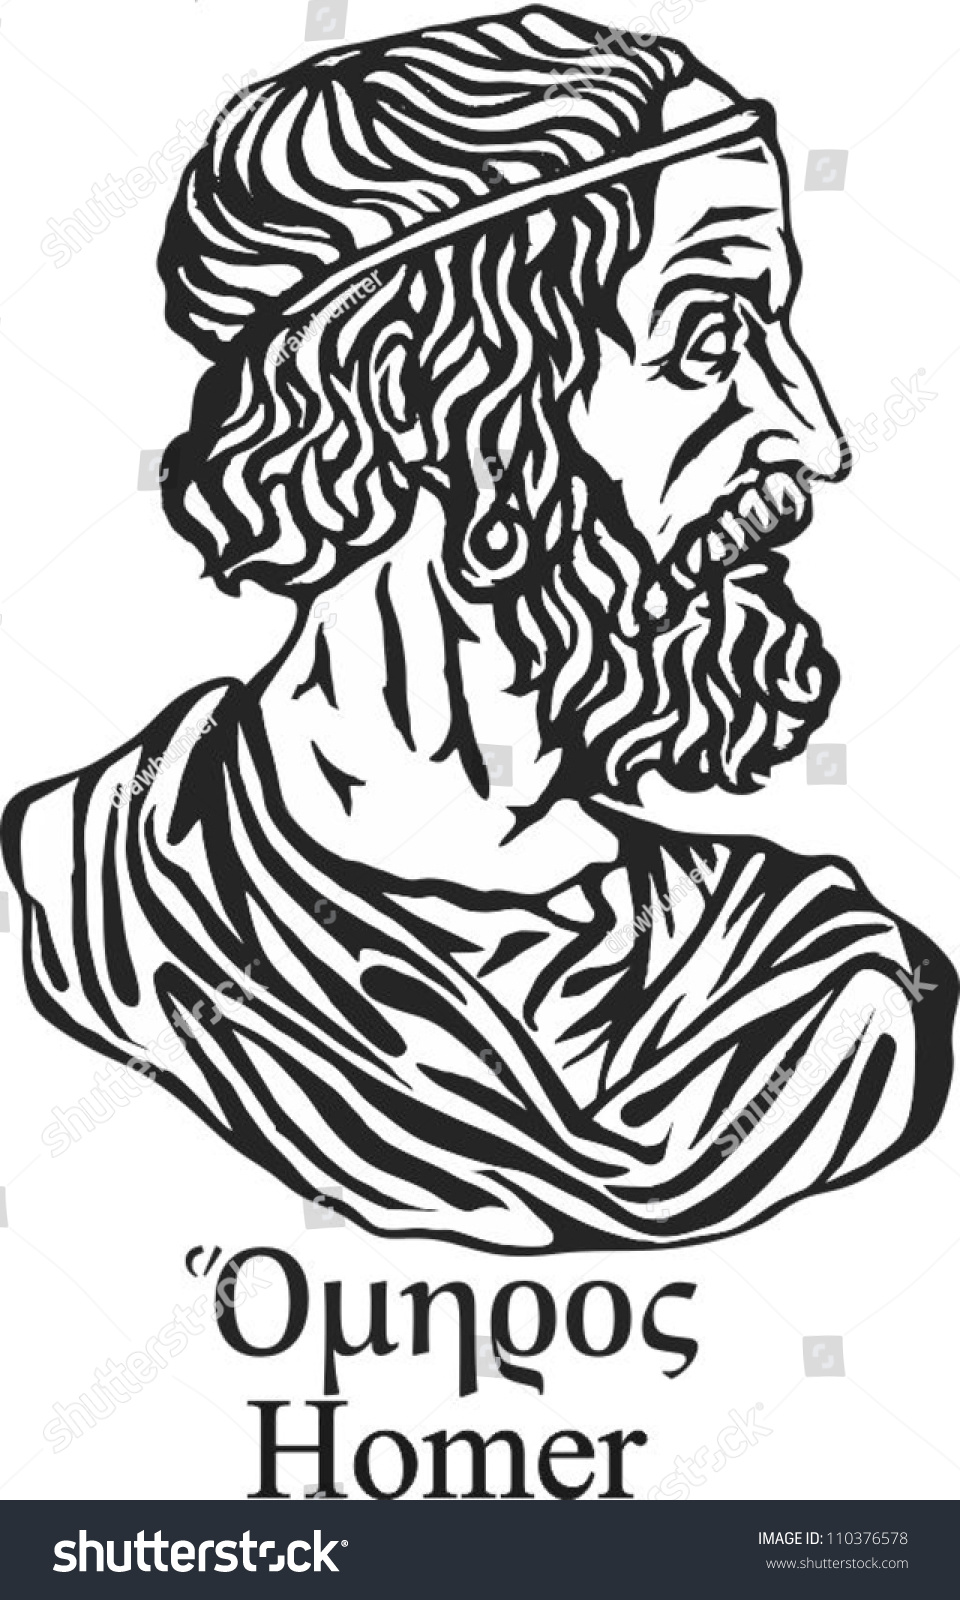 heroes in homer s poetry All poems of homer » search in the poems of homer: in the western classical tradition, homer is the author of the iliad and the odyssey.